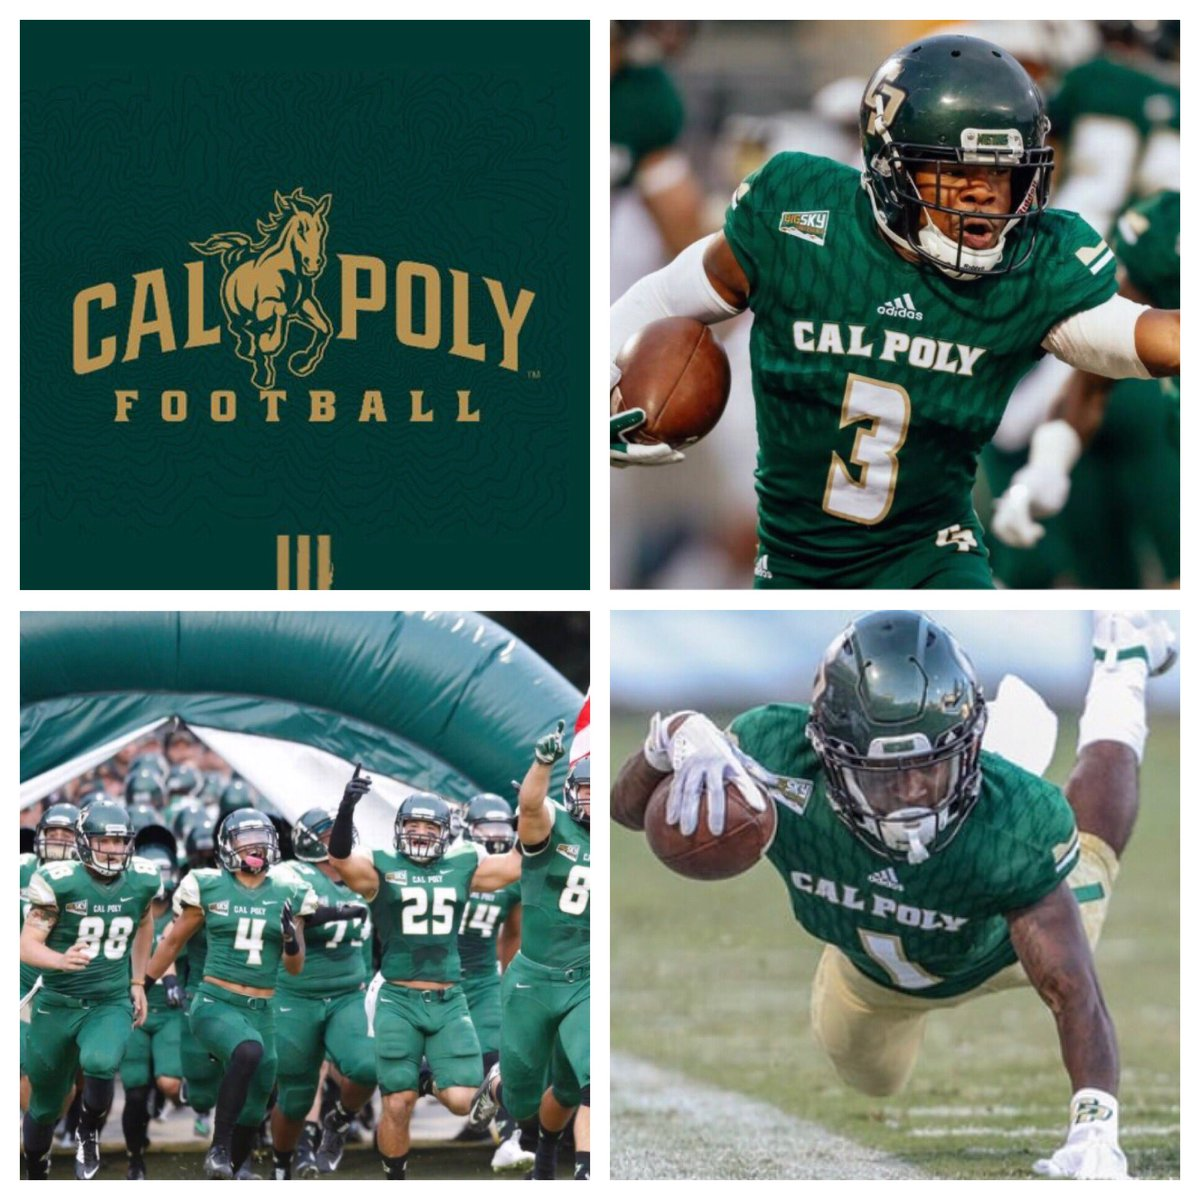 Blessed and honored to receive my first offer to Cal Poly!! @BrandonHuffman @CoachFerrigno